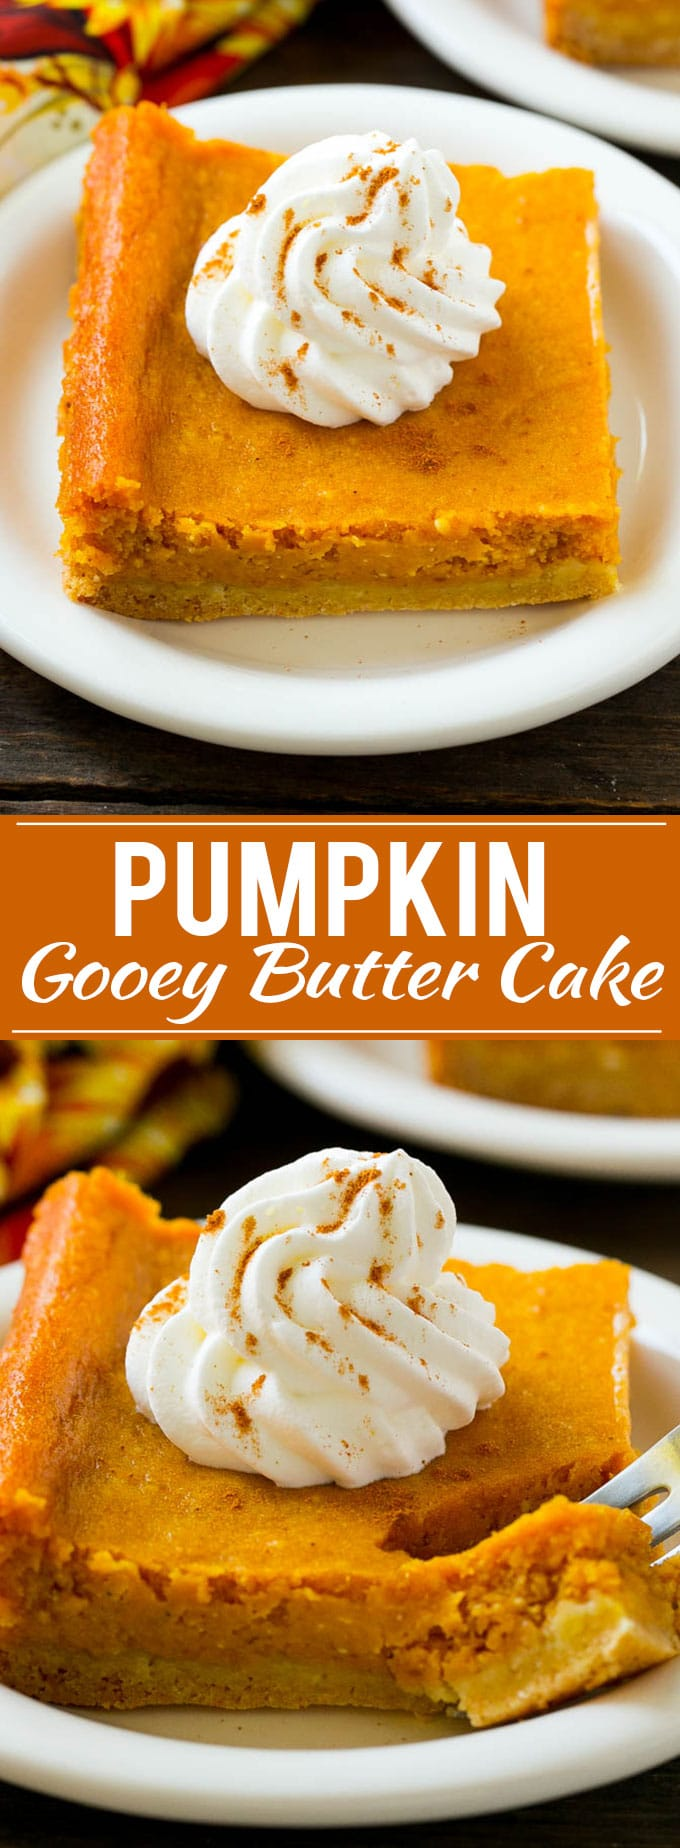 Pumpkin Gooey Butter Cake Recipe | Pumpkin Cake Recipe | Gooey Butter Cake | Pumpkin Dessert | Thanksgiving Dessert